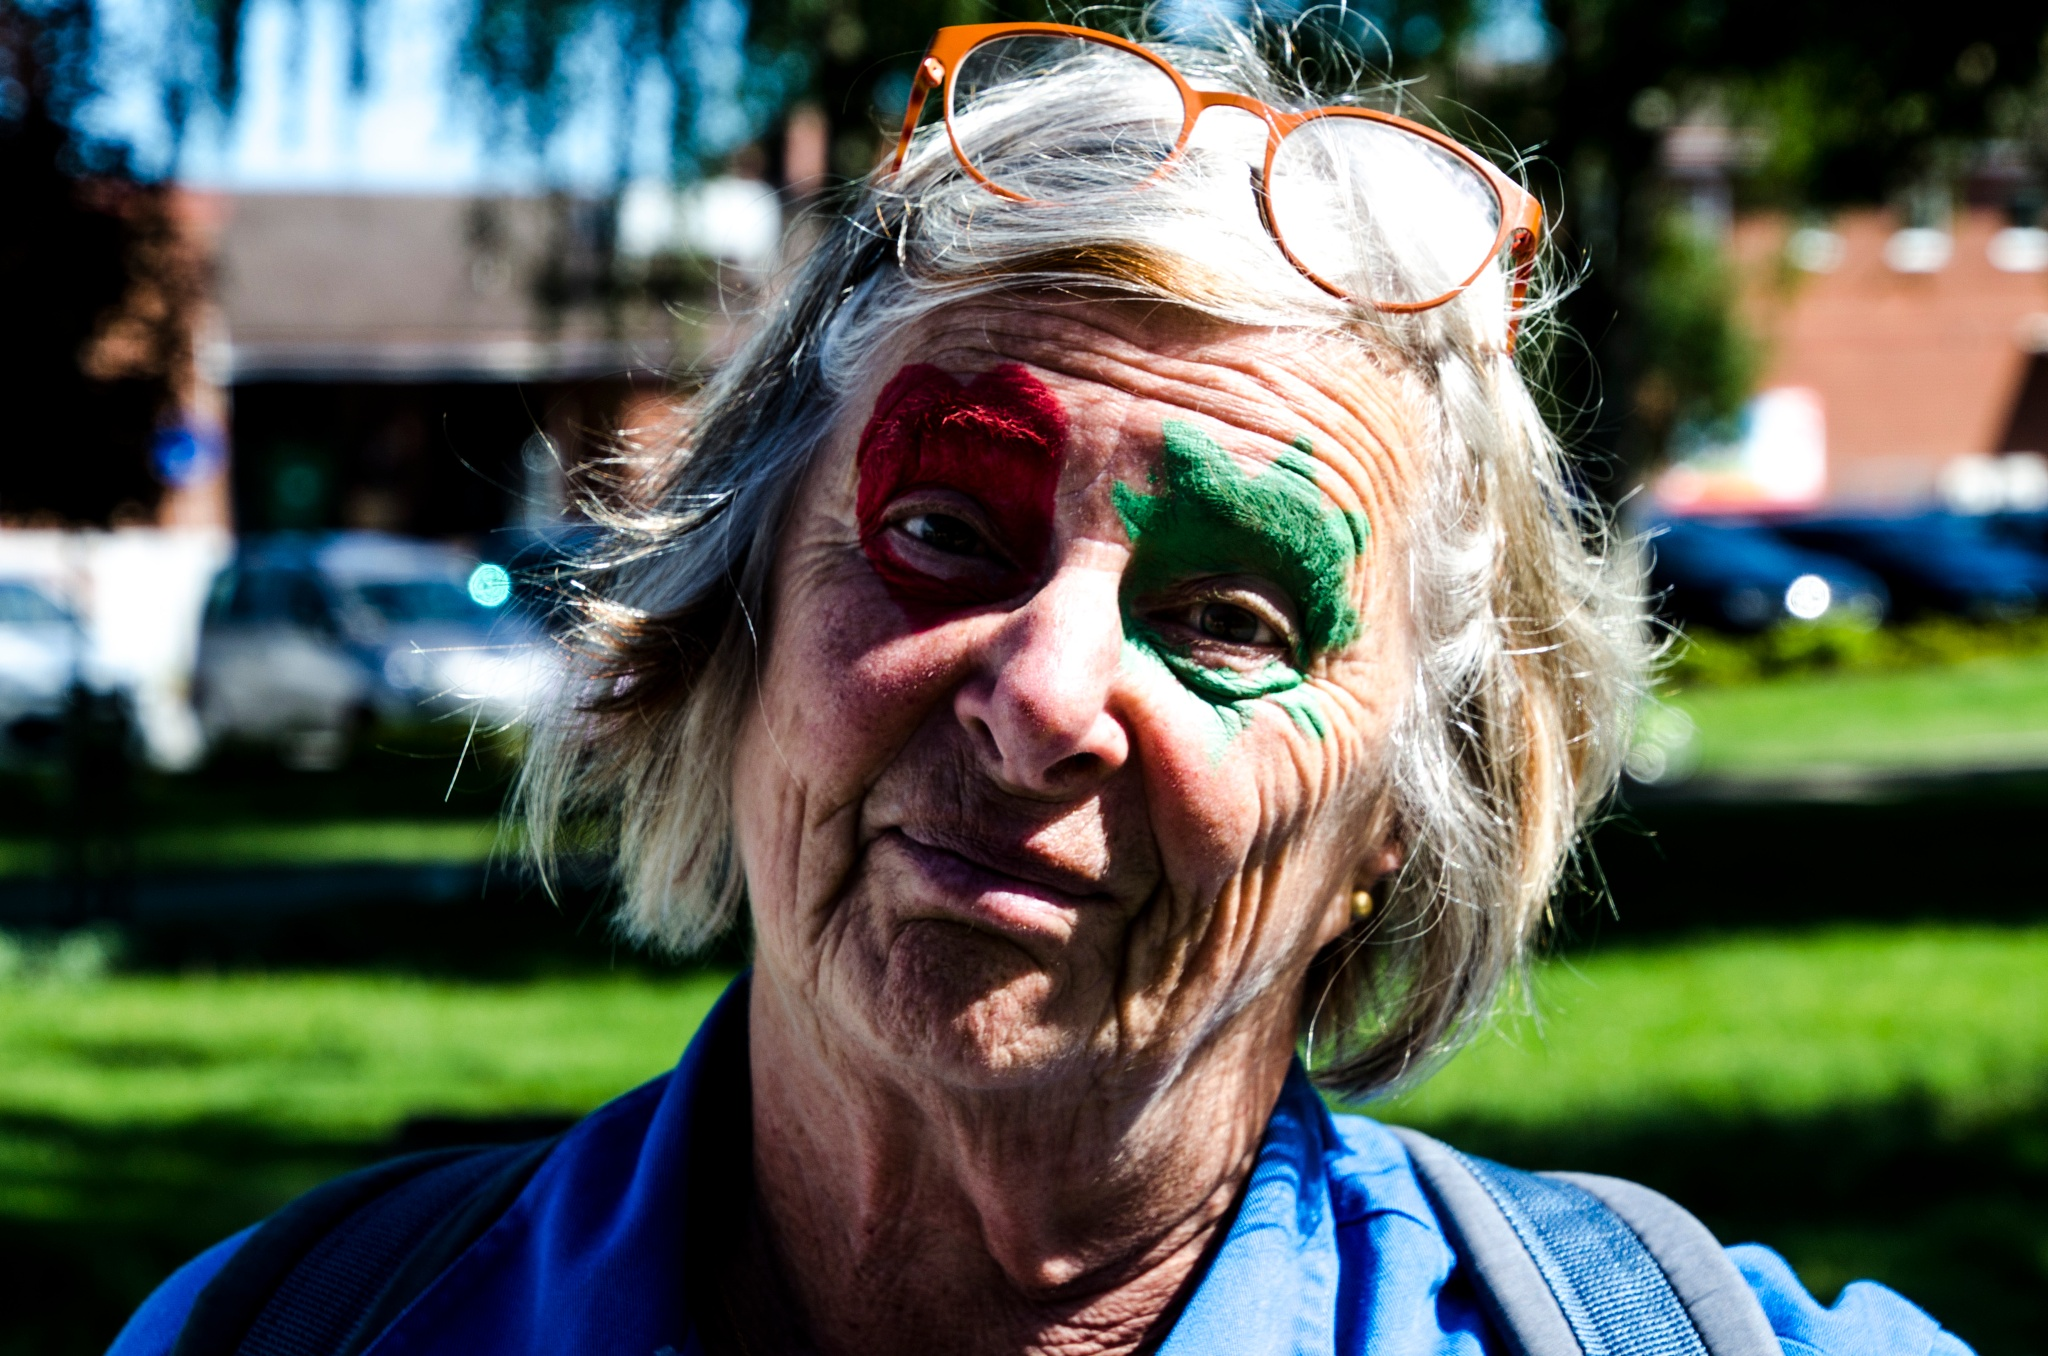 Even old ladies dare to face painting by Johnny Lythell